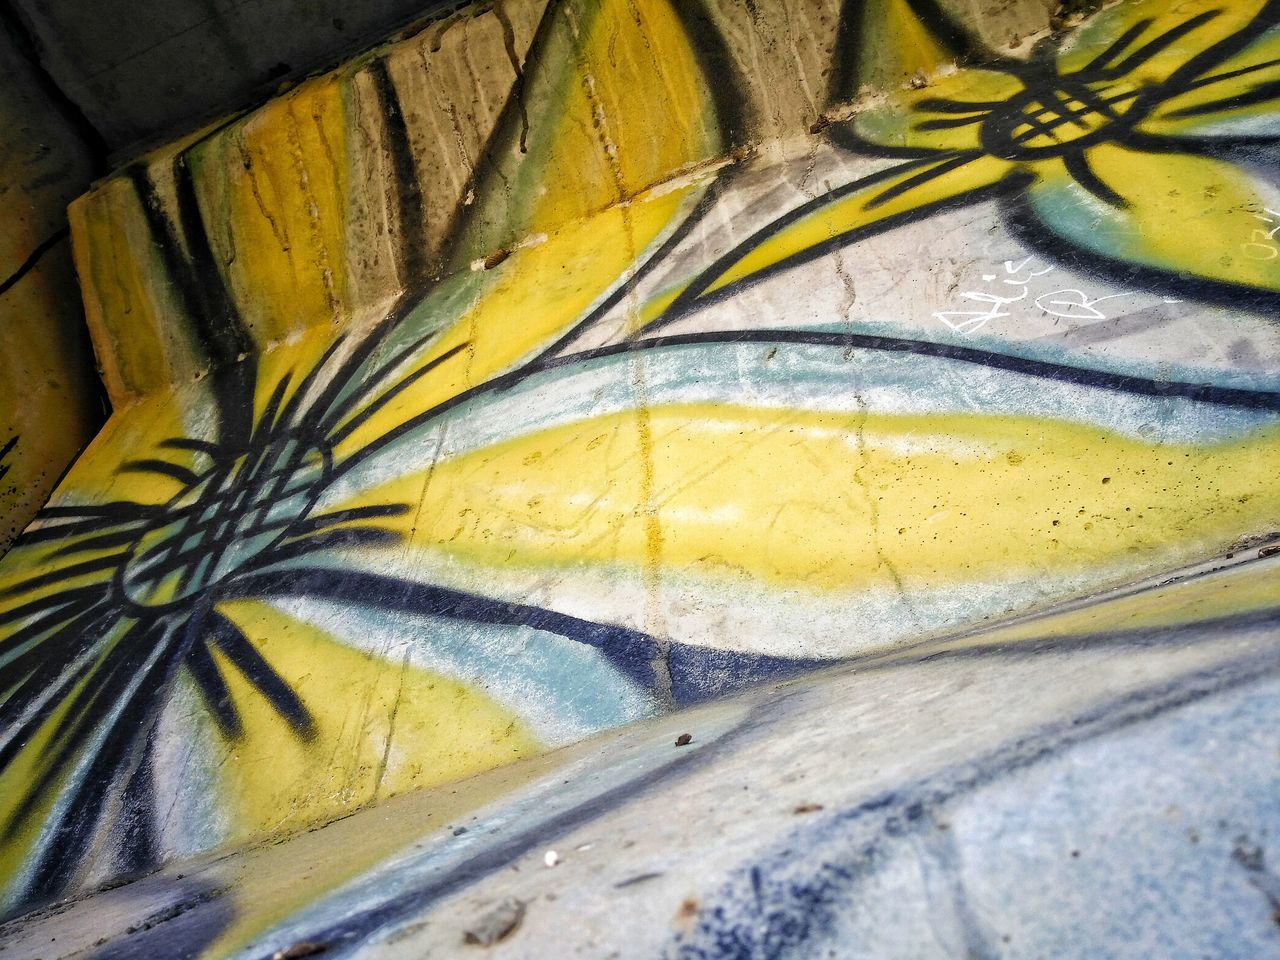 Yellow Close-up Full Frame Man Made Object Vibrant Color Messy Multi Colored No People Yellow Color Graffiti Graffiti Art Street Art/Graffiti AdamTurnerPhotography